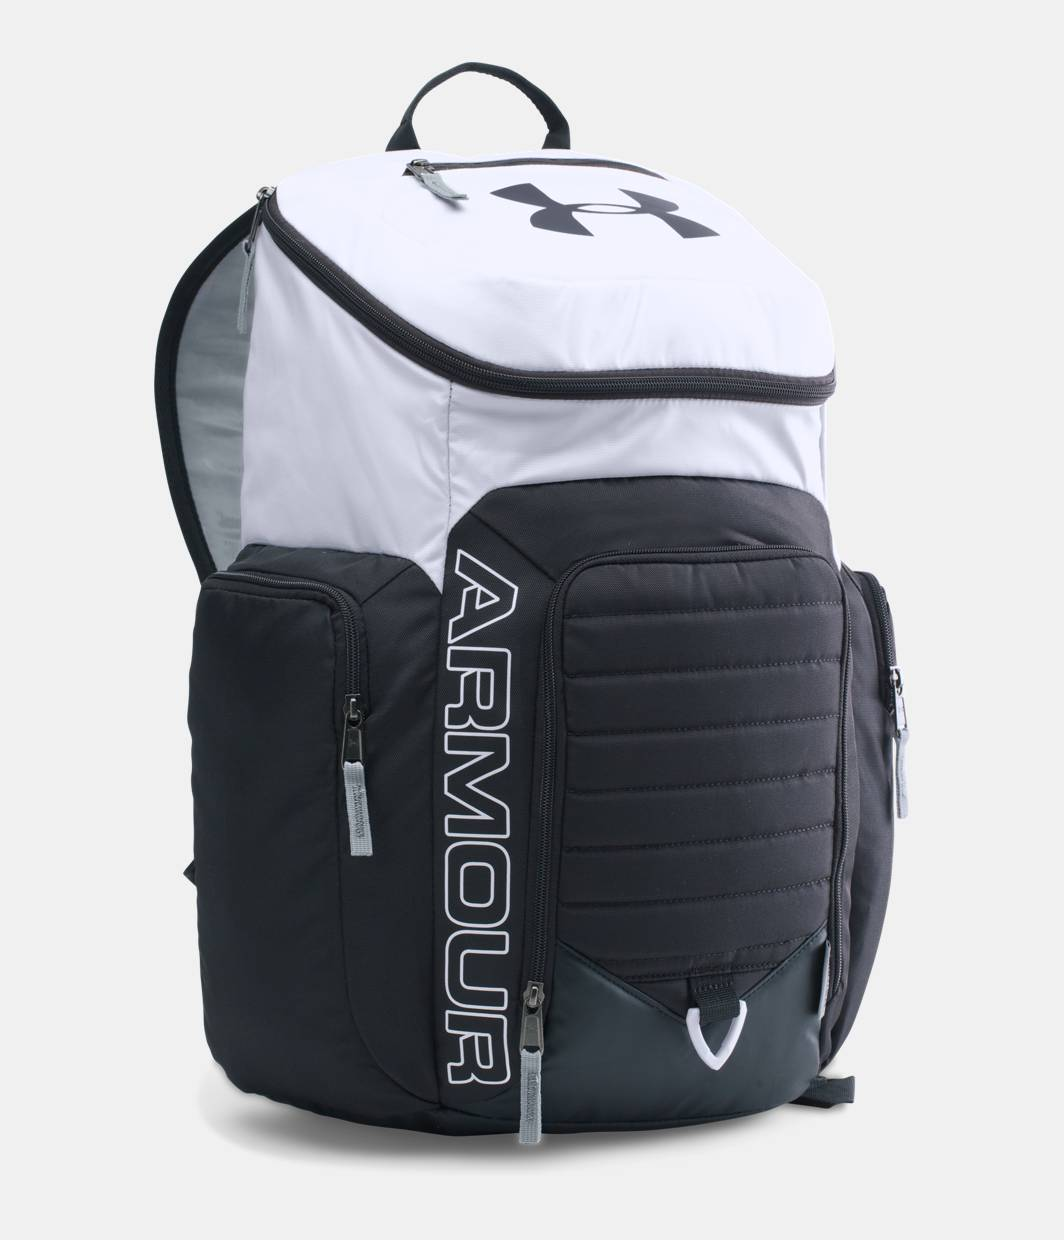 competitive price 7e1a1 b3d0d Buy Under Armour Backpacks